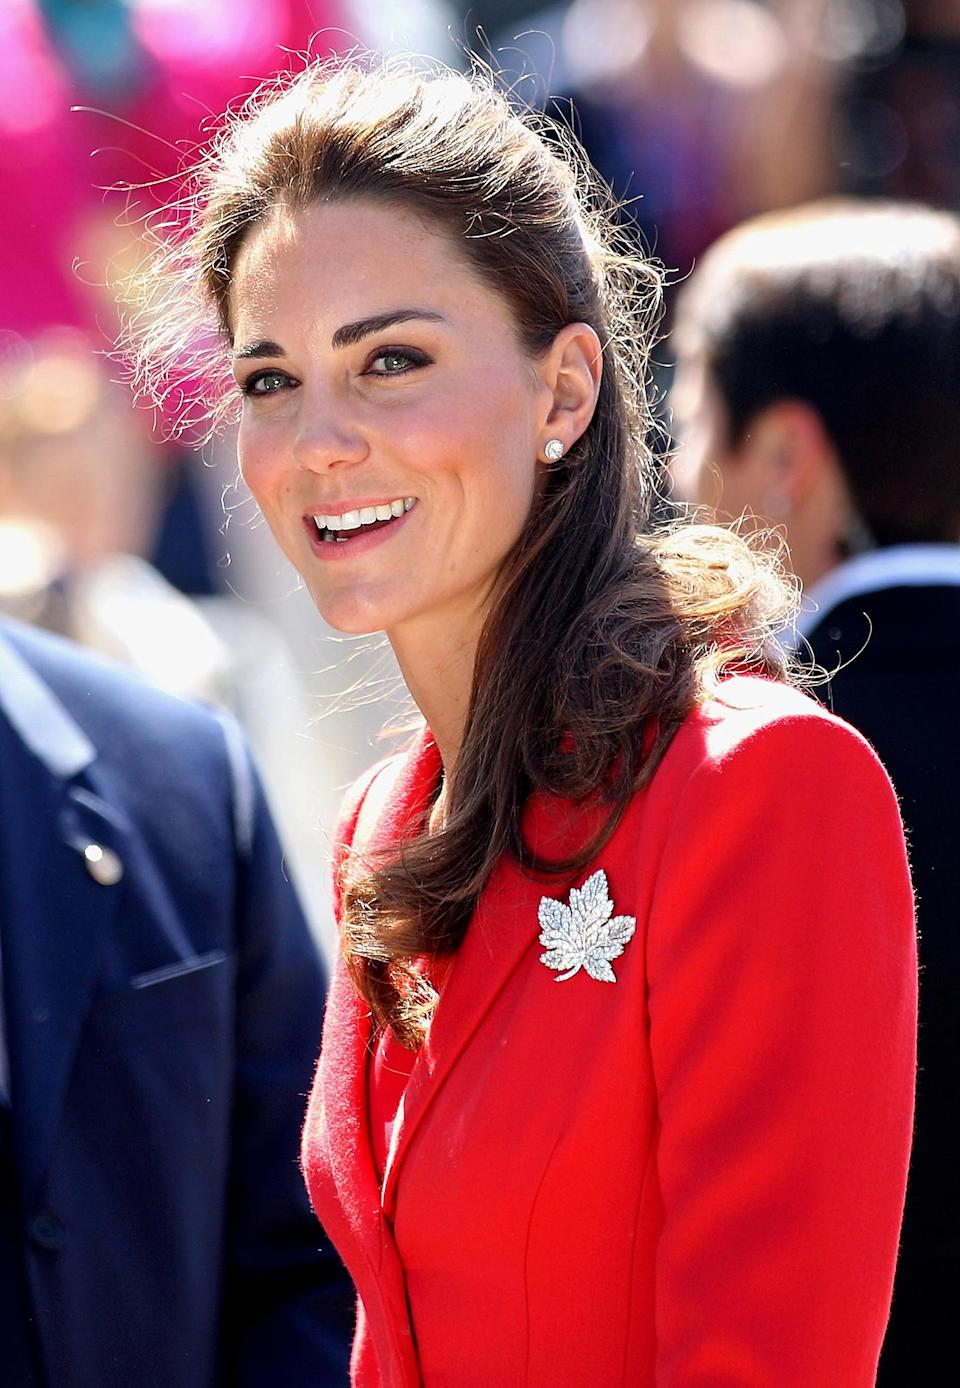 <p>The Maple Leaf brooch is another piece worn by multiple royal women over the years, including Kate, Camilla, the Queen and the Queen Mother — often (appropriately!) during their visits to the Commonwealth country of Canada.</p>